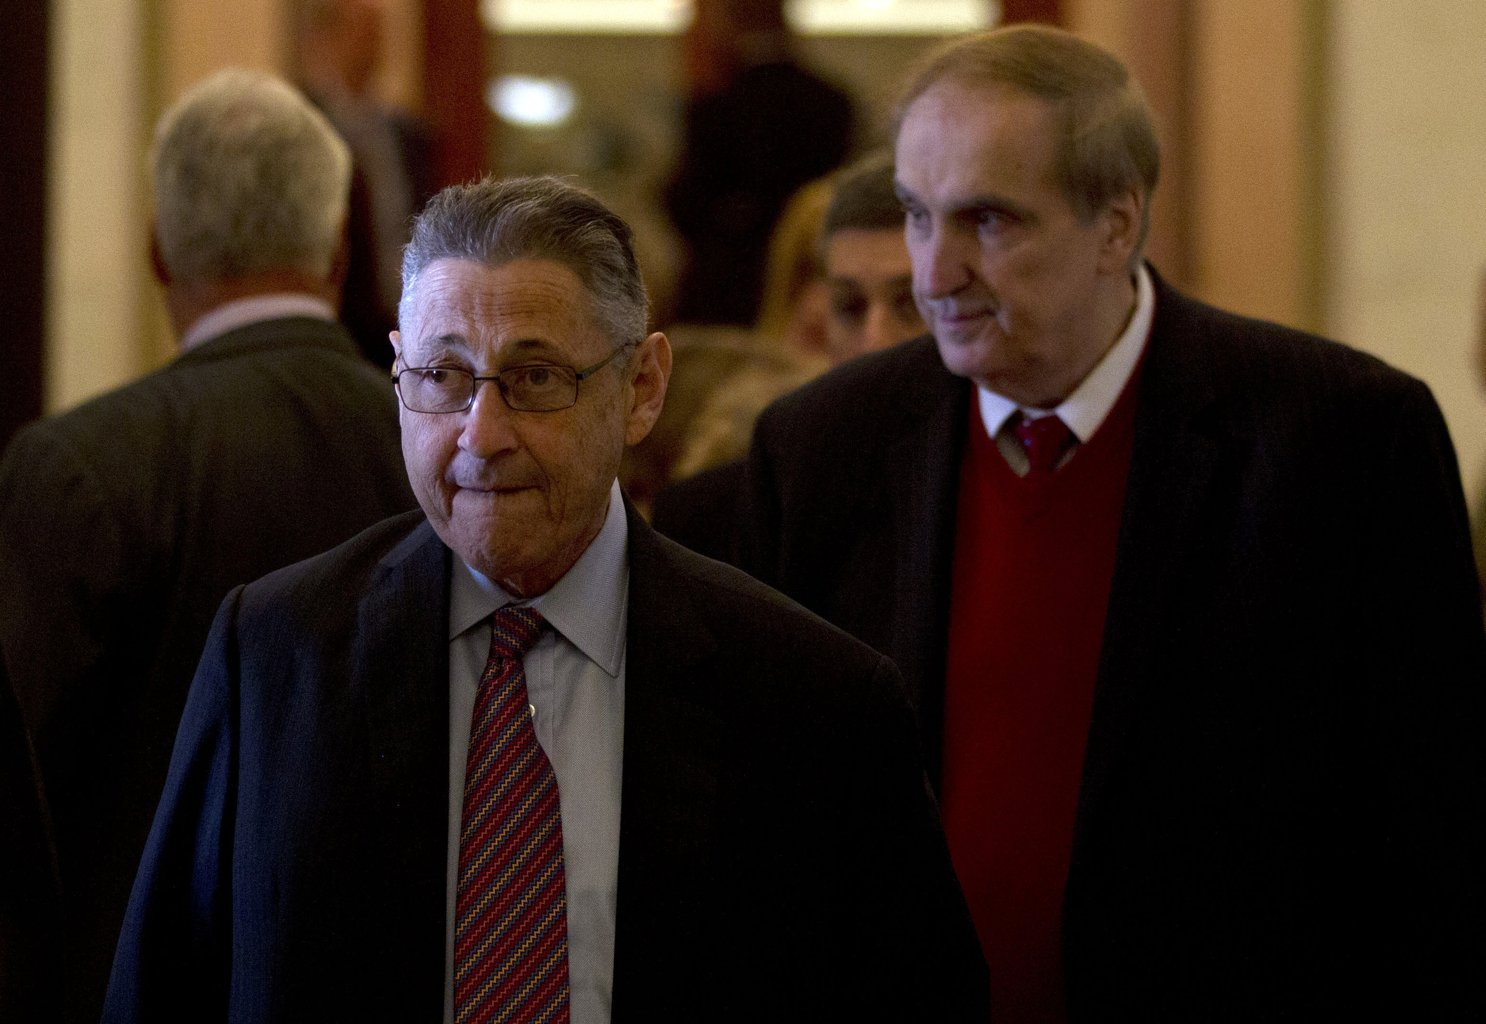 Assembly Speaker Sheldon Silver, D-Manhattan, left, walks with Assemblyman Vito Lopez, D-Brooklyn, to an affordable housing news conference at the Capitol in Albany, N.Y. Accusations of sexual harassment that emerged over the summer have unraveled in public before a state ethics committee, revealing more sexual misconduct accusations against Lopez and a secret six-figure payoff to the accusers with taxpayer money that was approved by Silver. (AP Photo/Mike Groll, File)